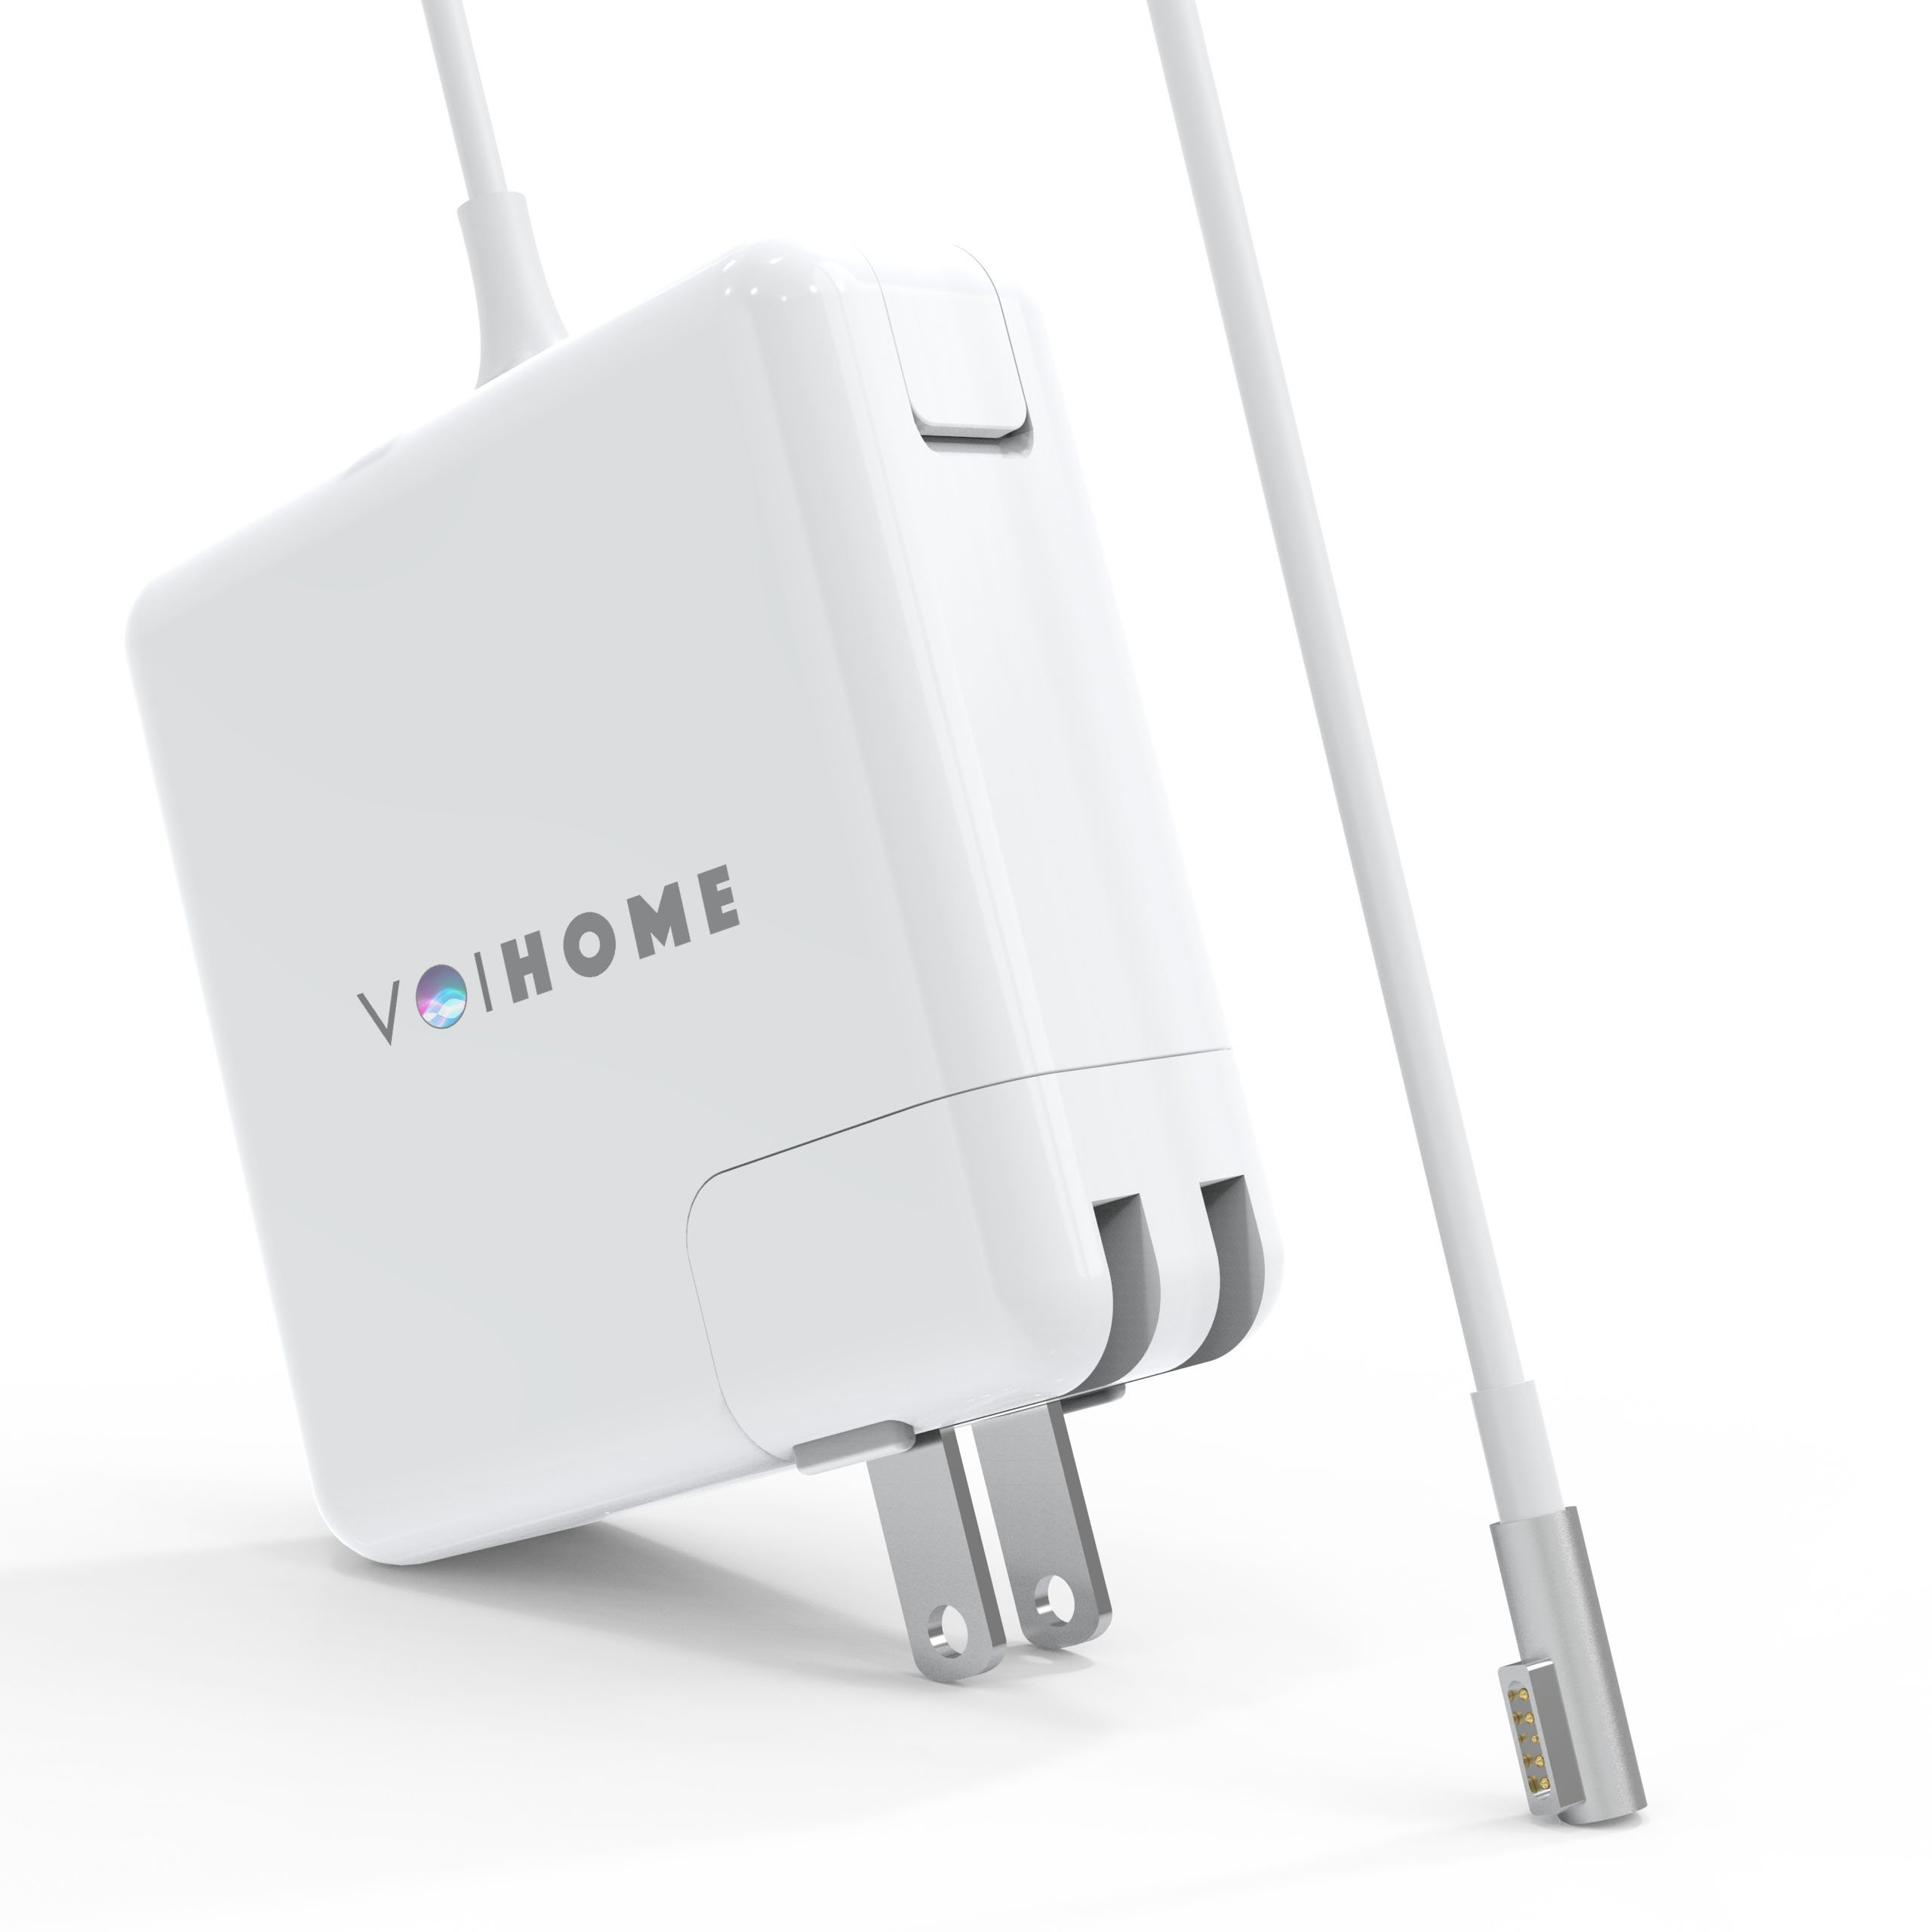 MacBook Pro Charger, Replacement of voihome 45W L-Tip MagSafe Power Adapter for Macbook Pro Charger 13-inch (Before Mid 2012 Models) (45W-L)